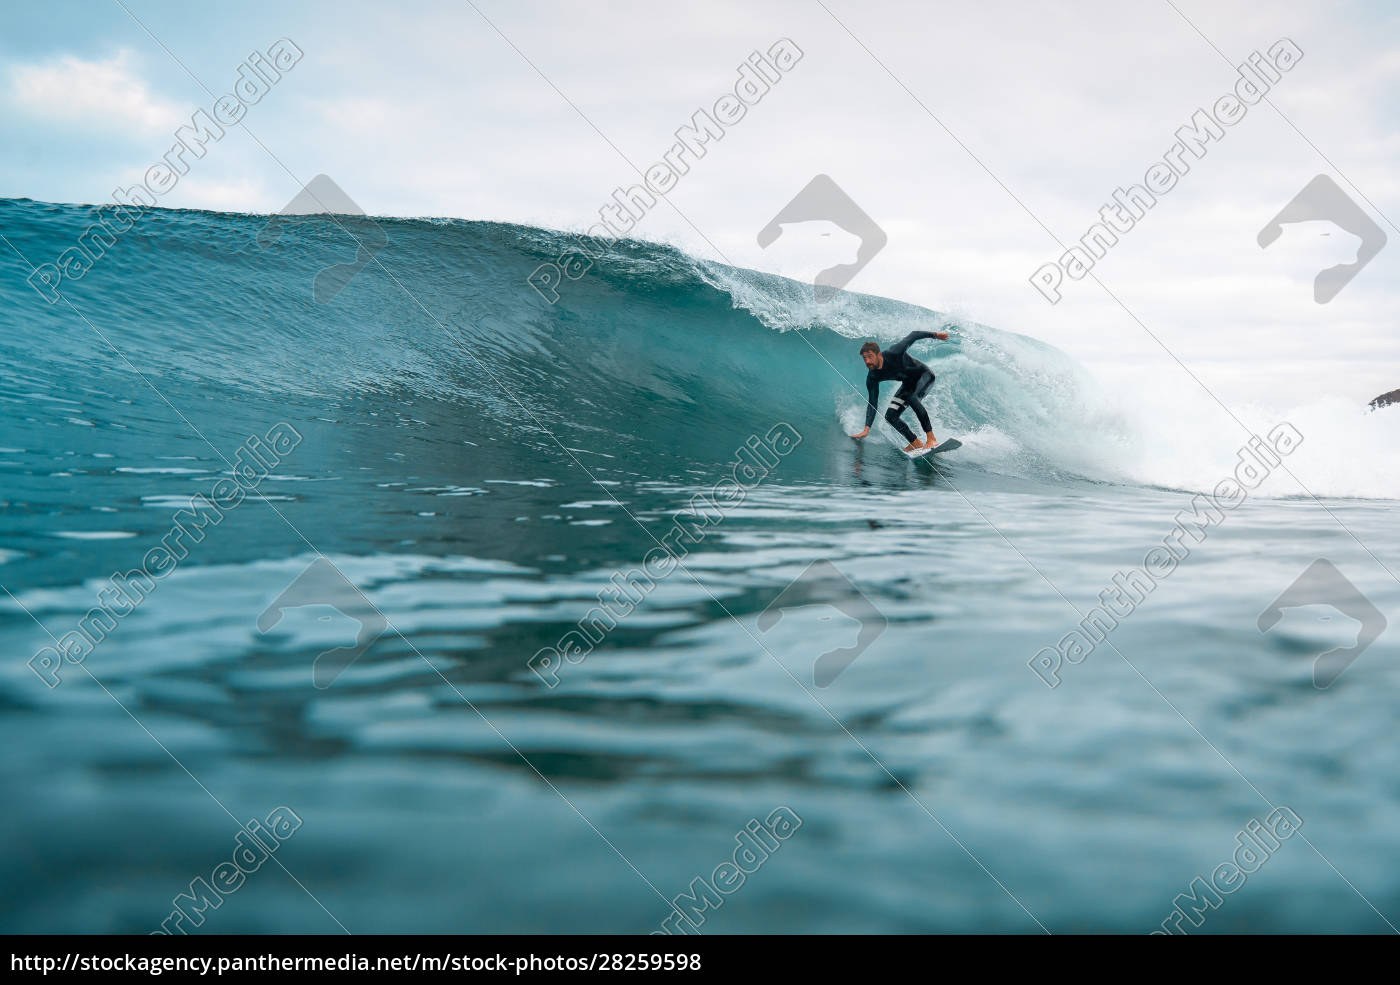 surfer, riding, waves, on, the, island - 28259598